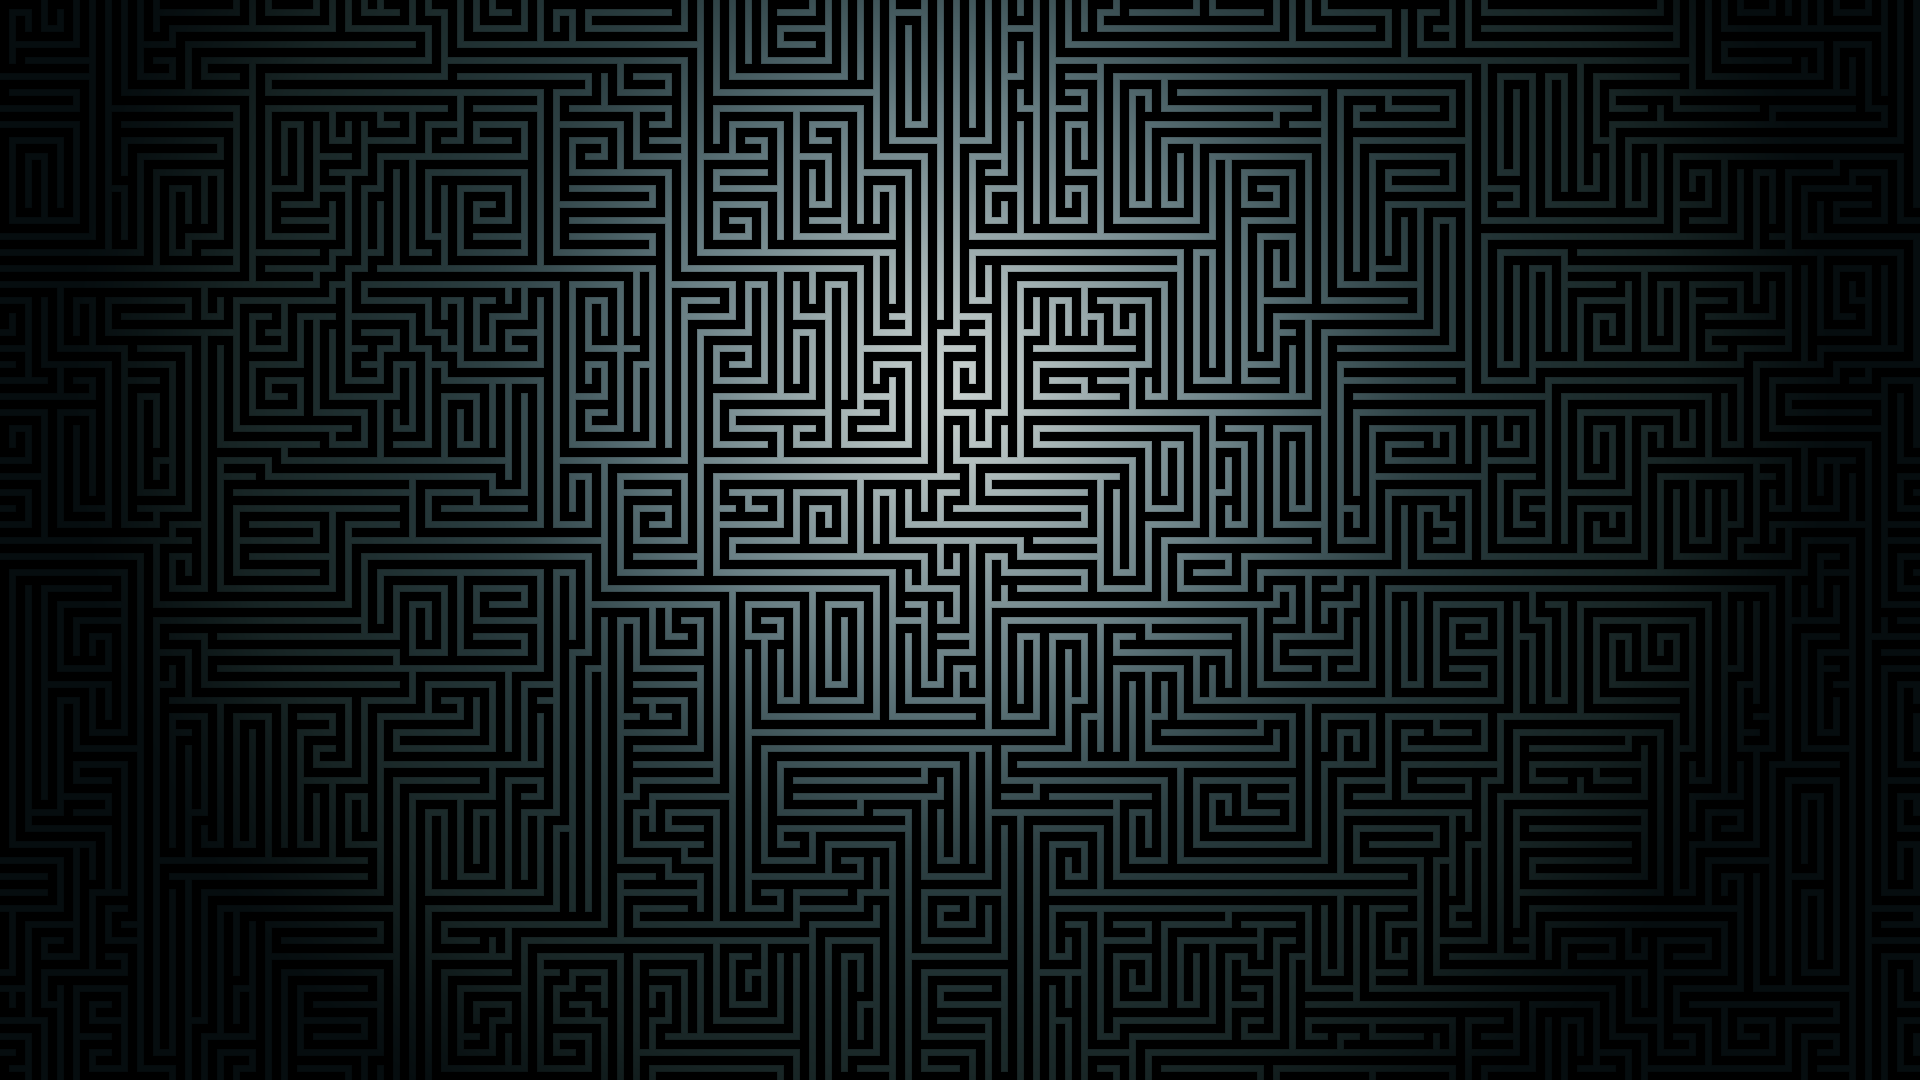 inception maze wallpapercrzisme.deviantart on @deviantart